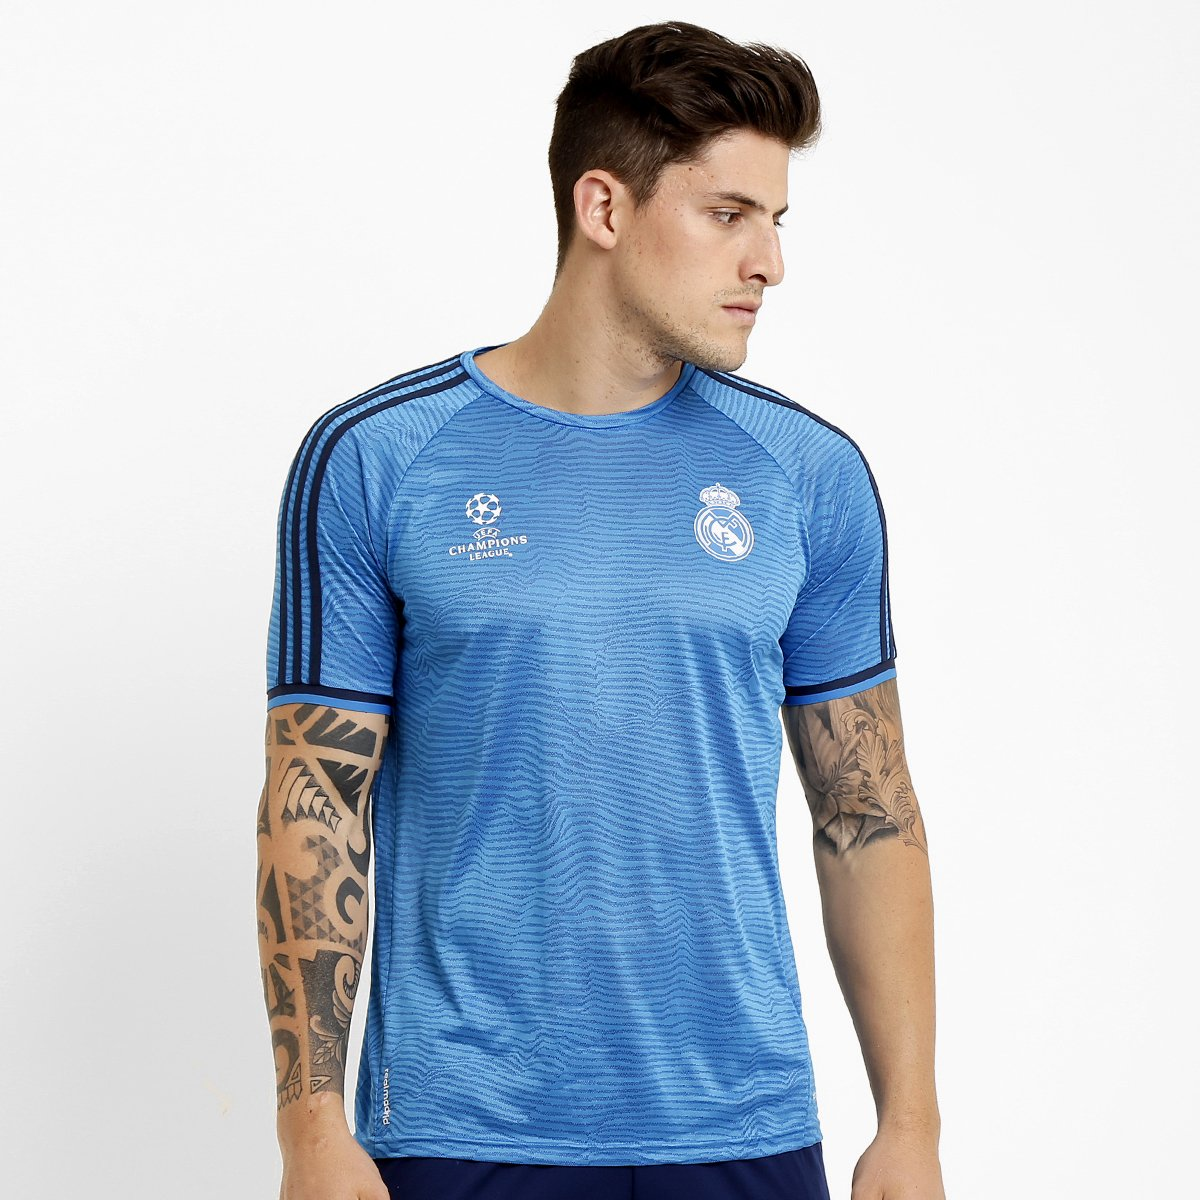 ee14b5fac0 Camisa Adidas Real Madrid Treino 2015 UCL - Compre Agora